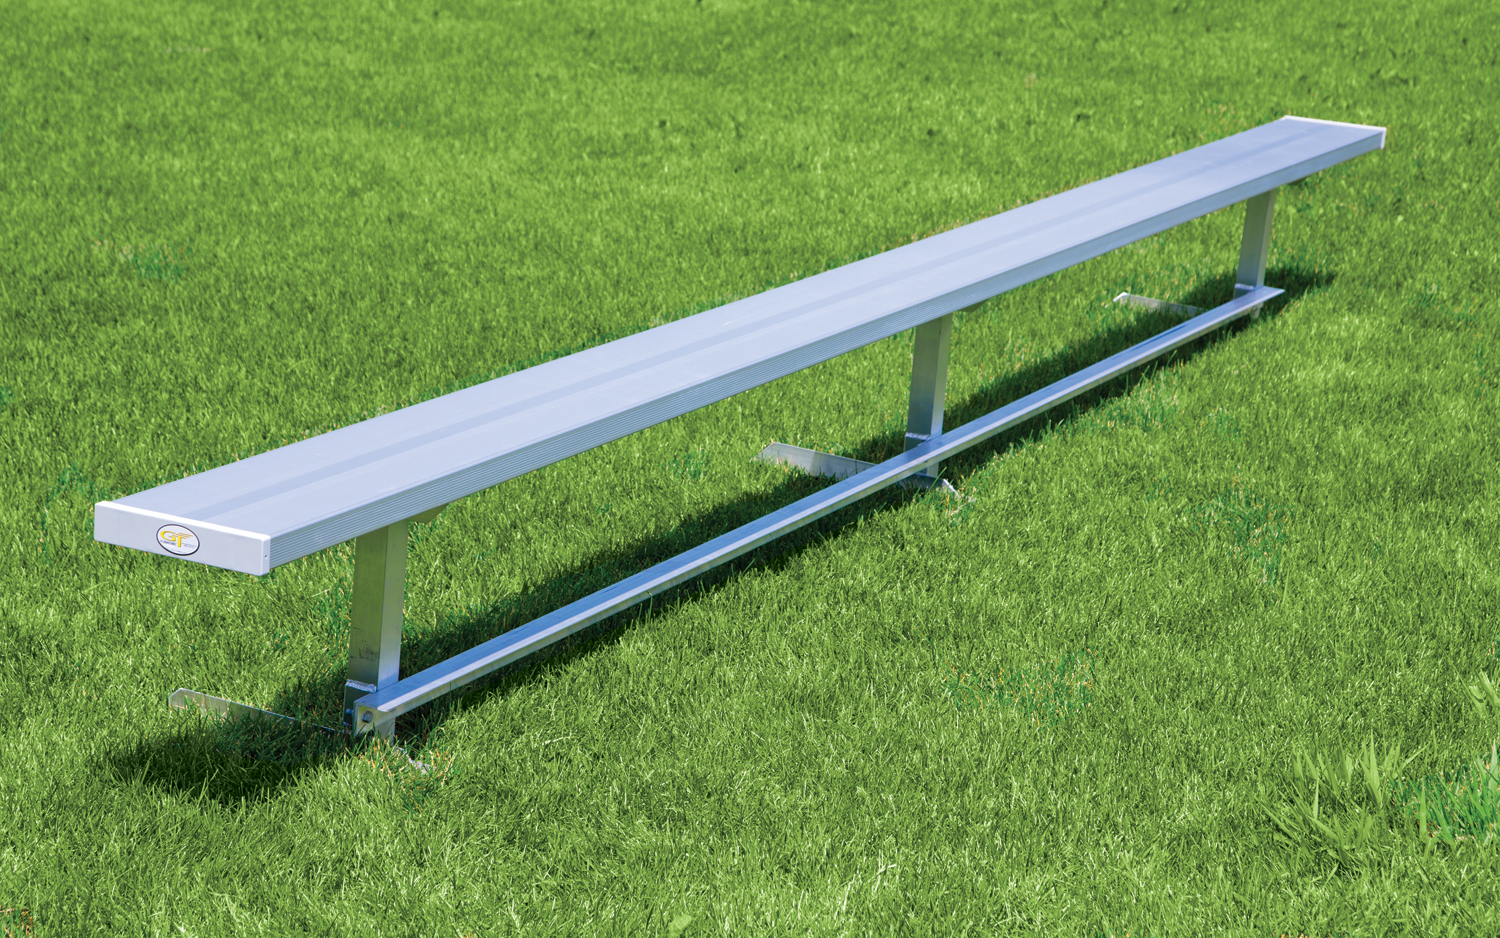 15 inch long permanent bench without back